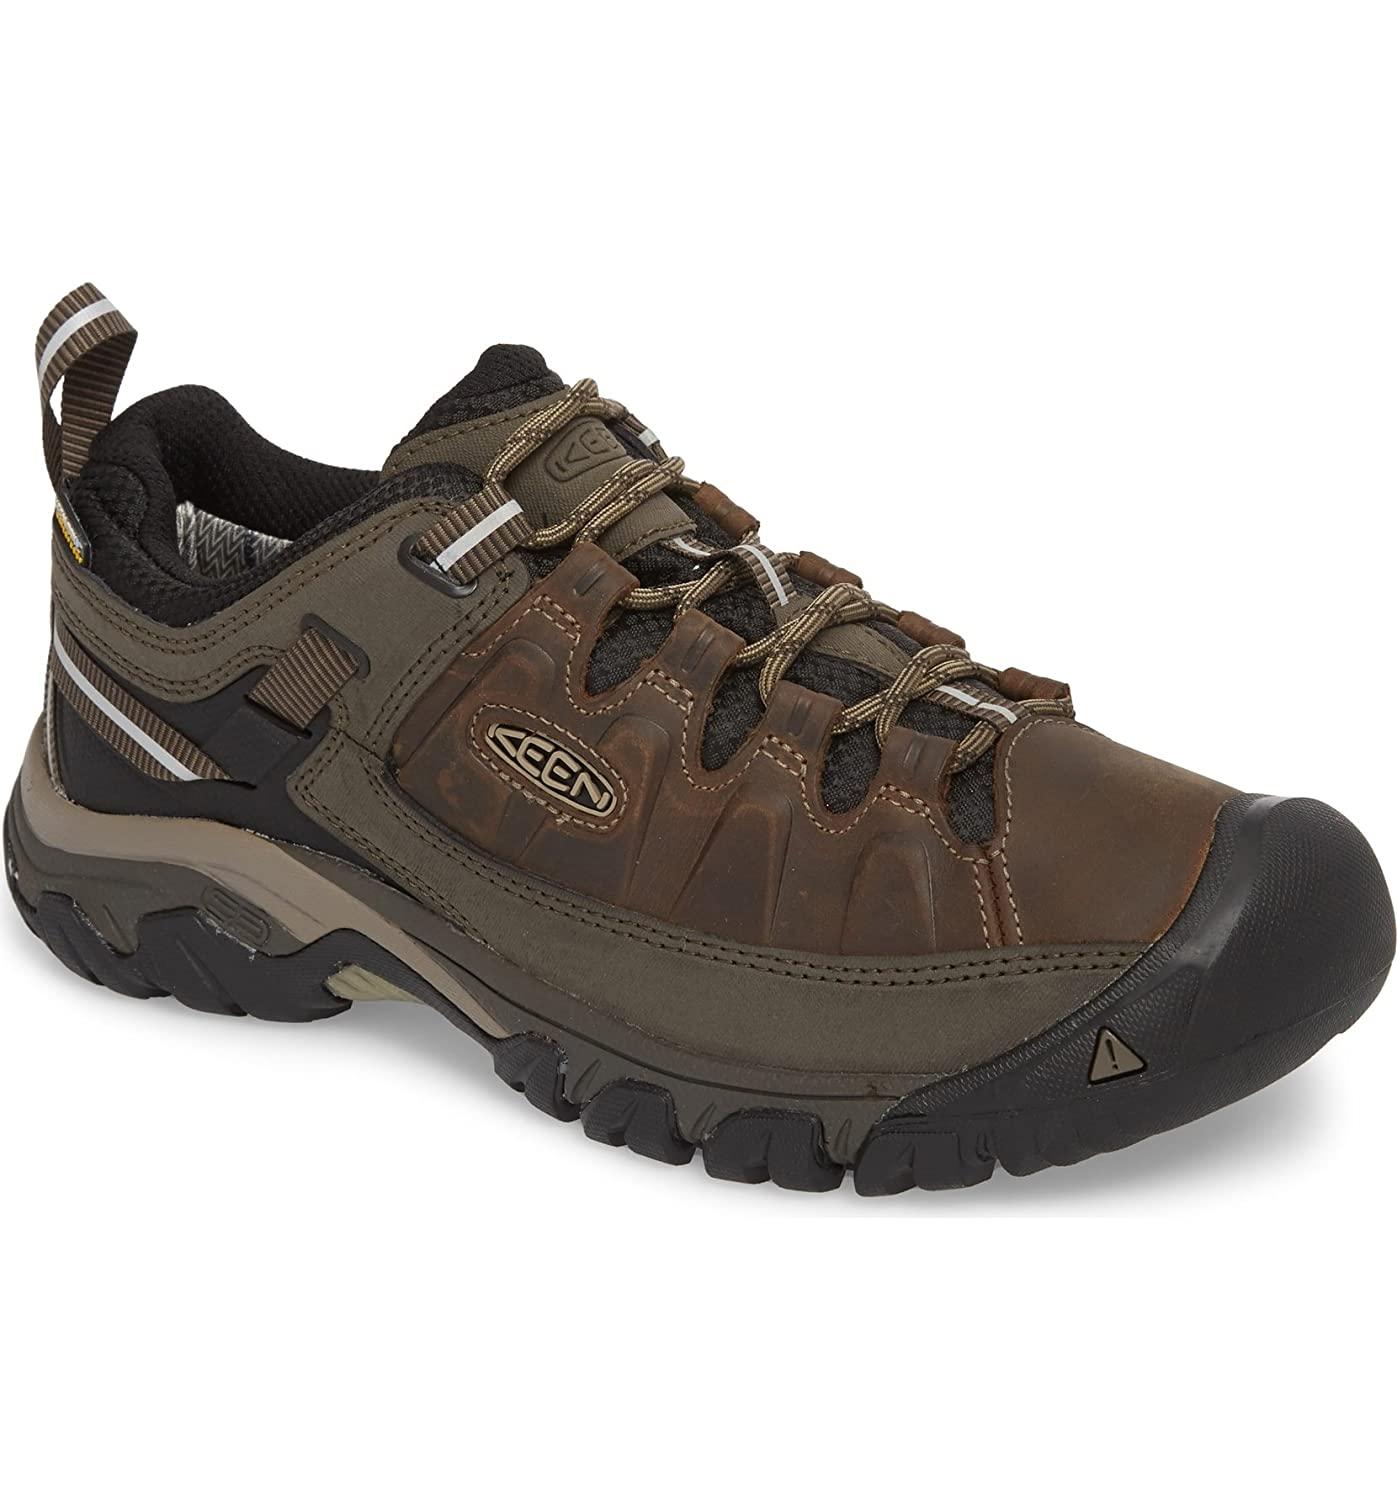 [キーン] メンズ スニーカー Keen Targhee III Waterproof Hiking Shoe [並行輸入品] B07F3XP6ZF